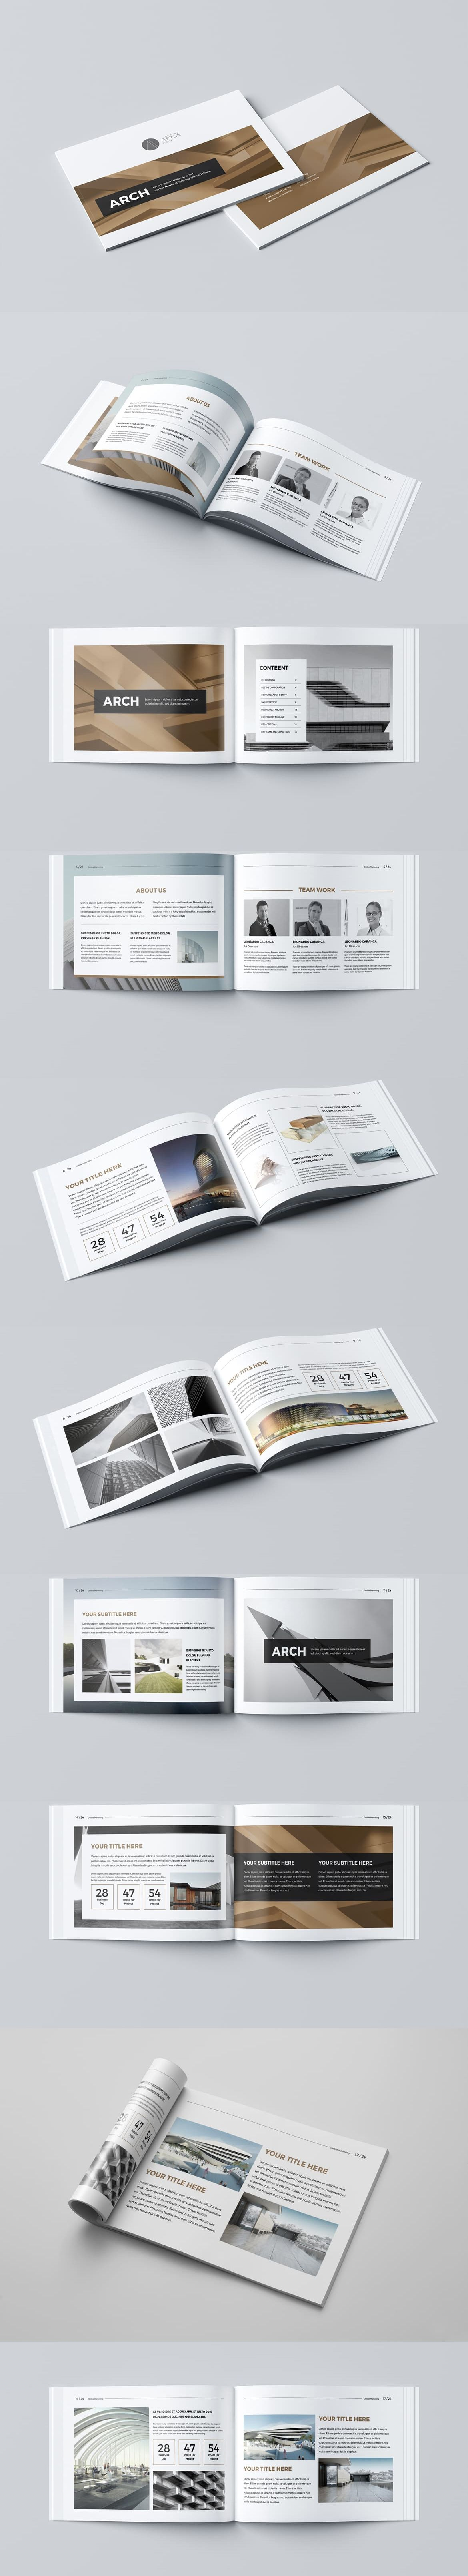 New Modern Architecture Brochure Template InDesign INDD - 24 Pages ...